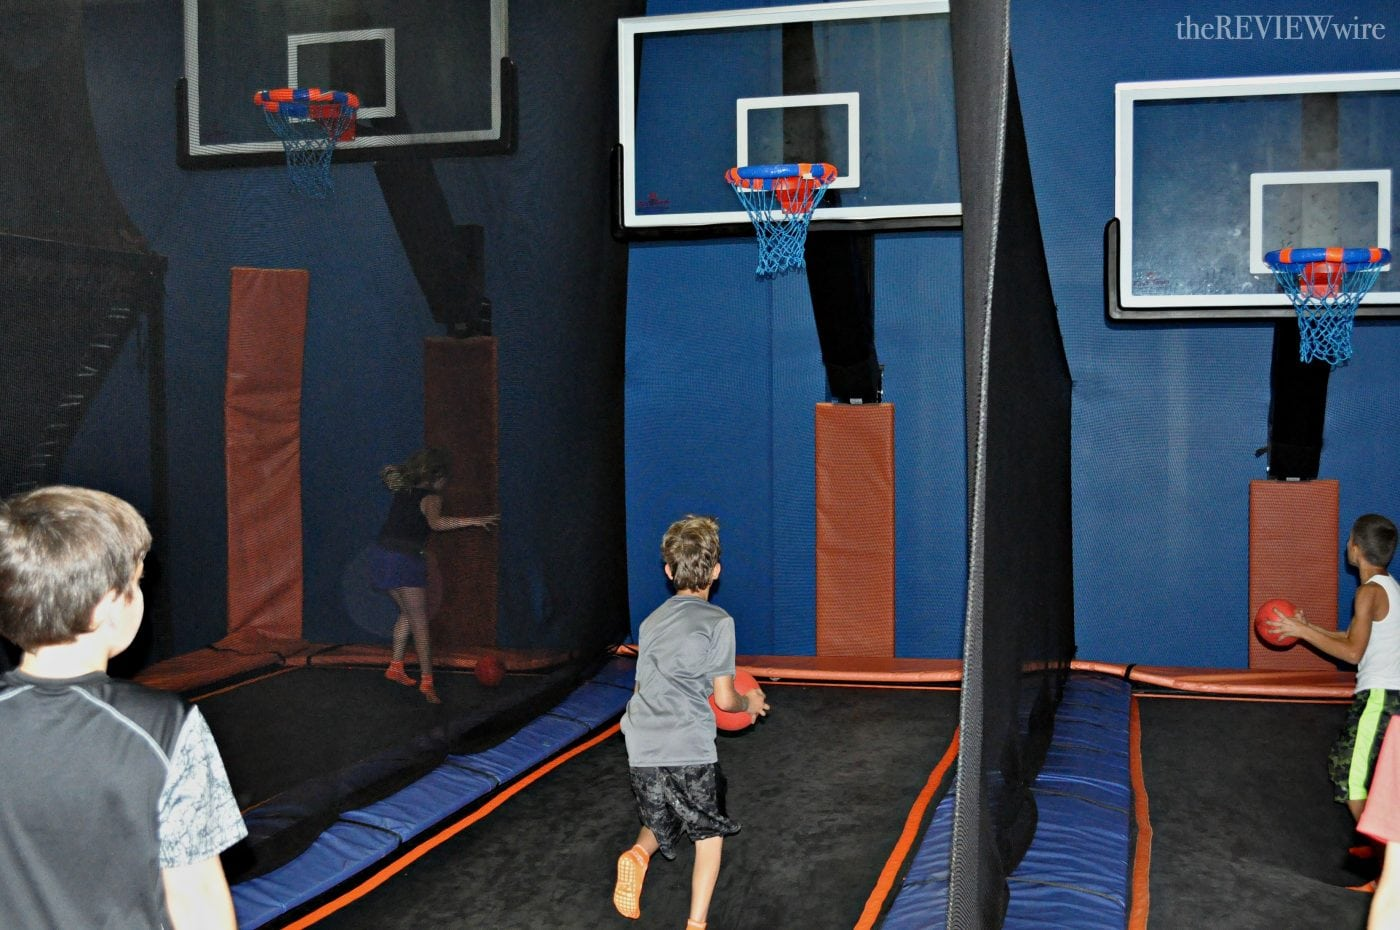 Sky Zone Basketball - The Review Wire